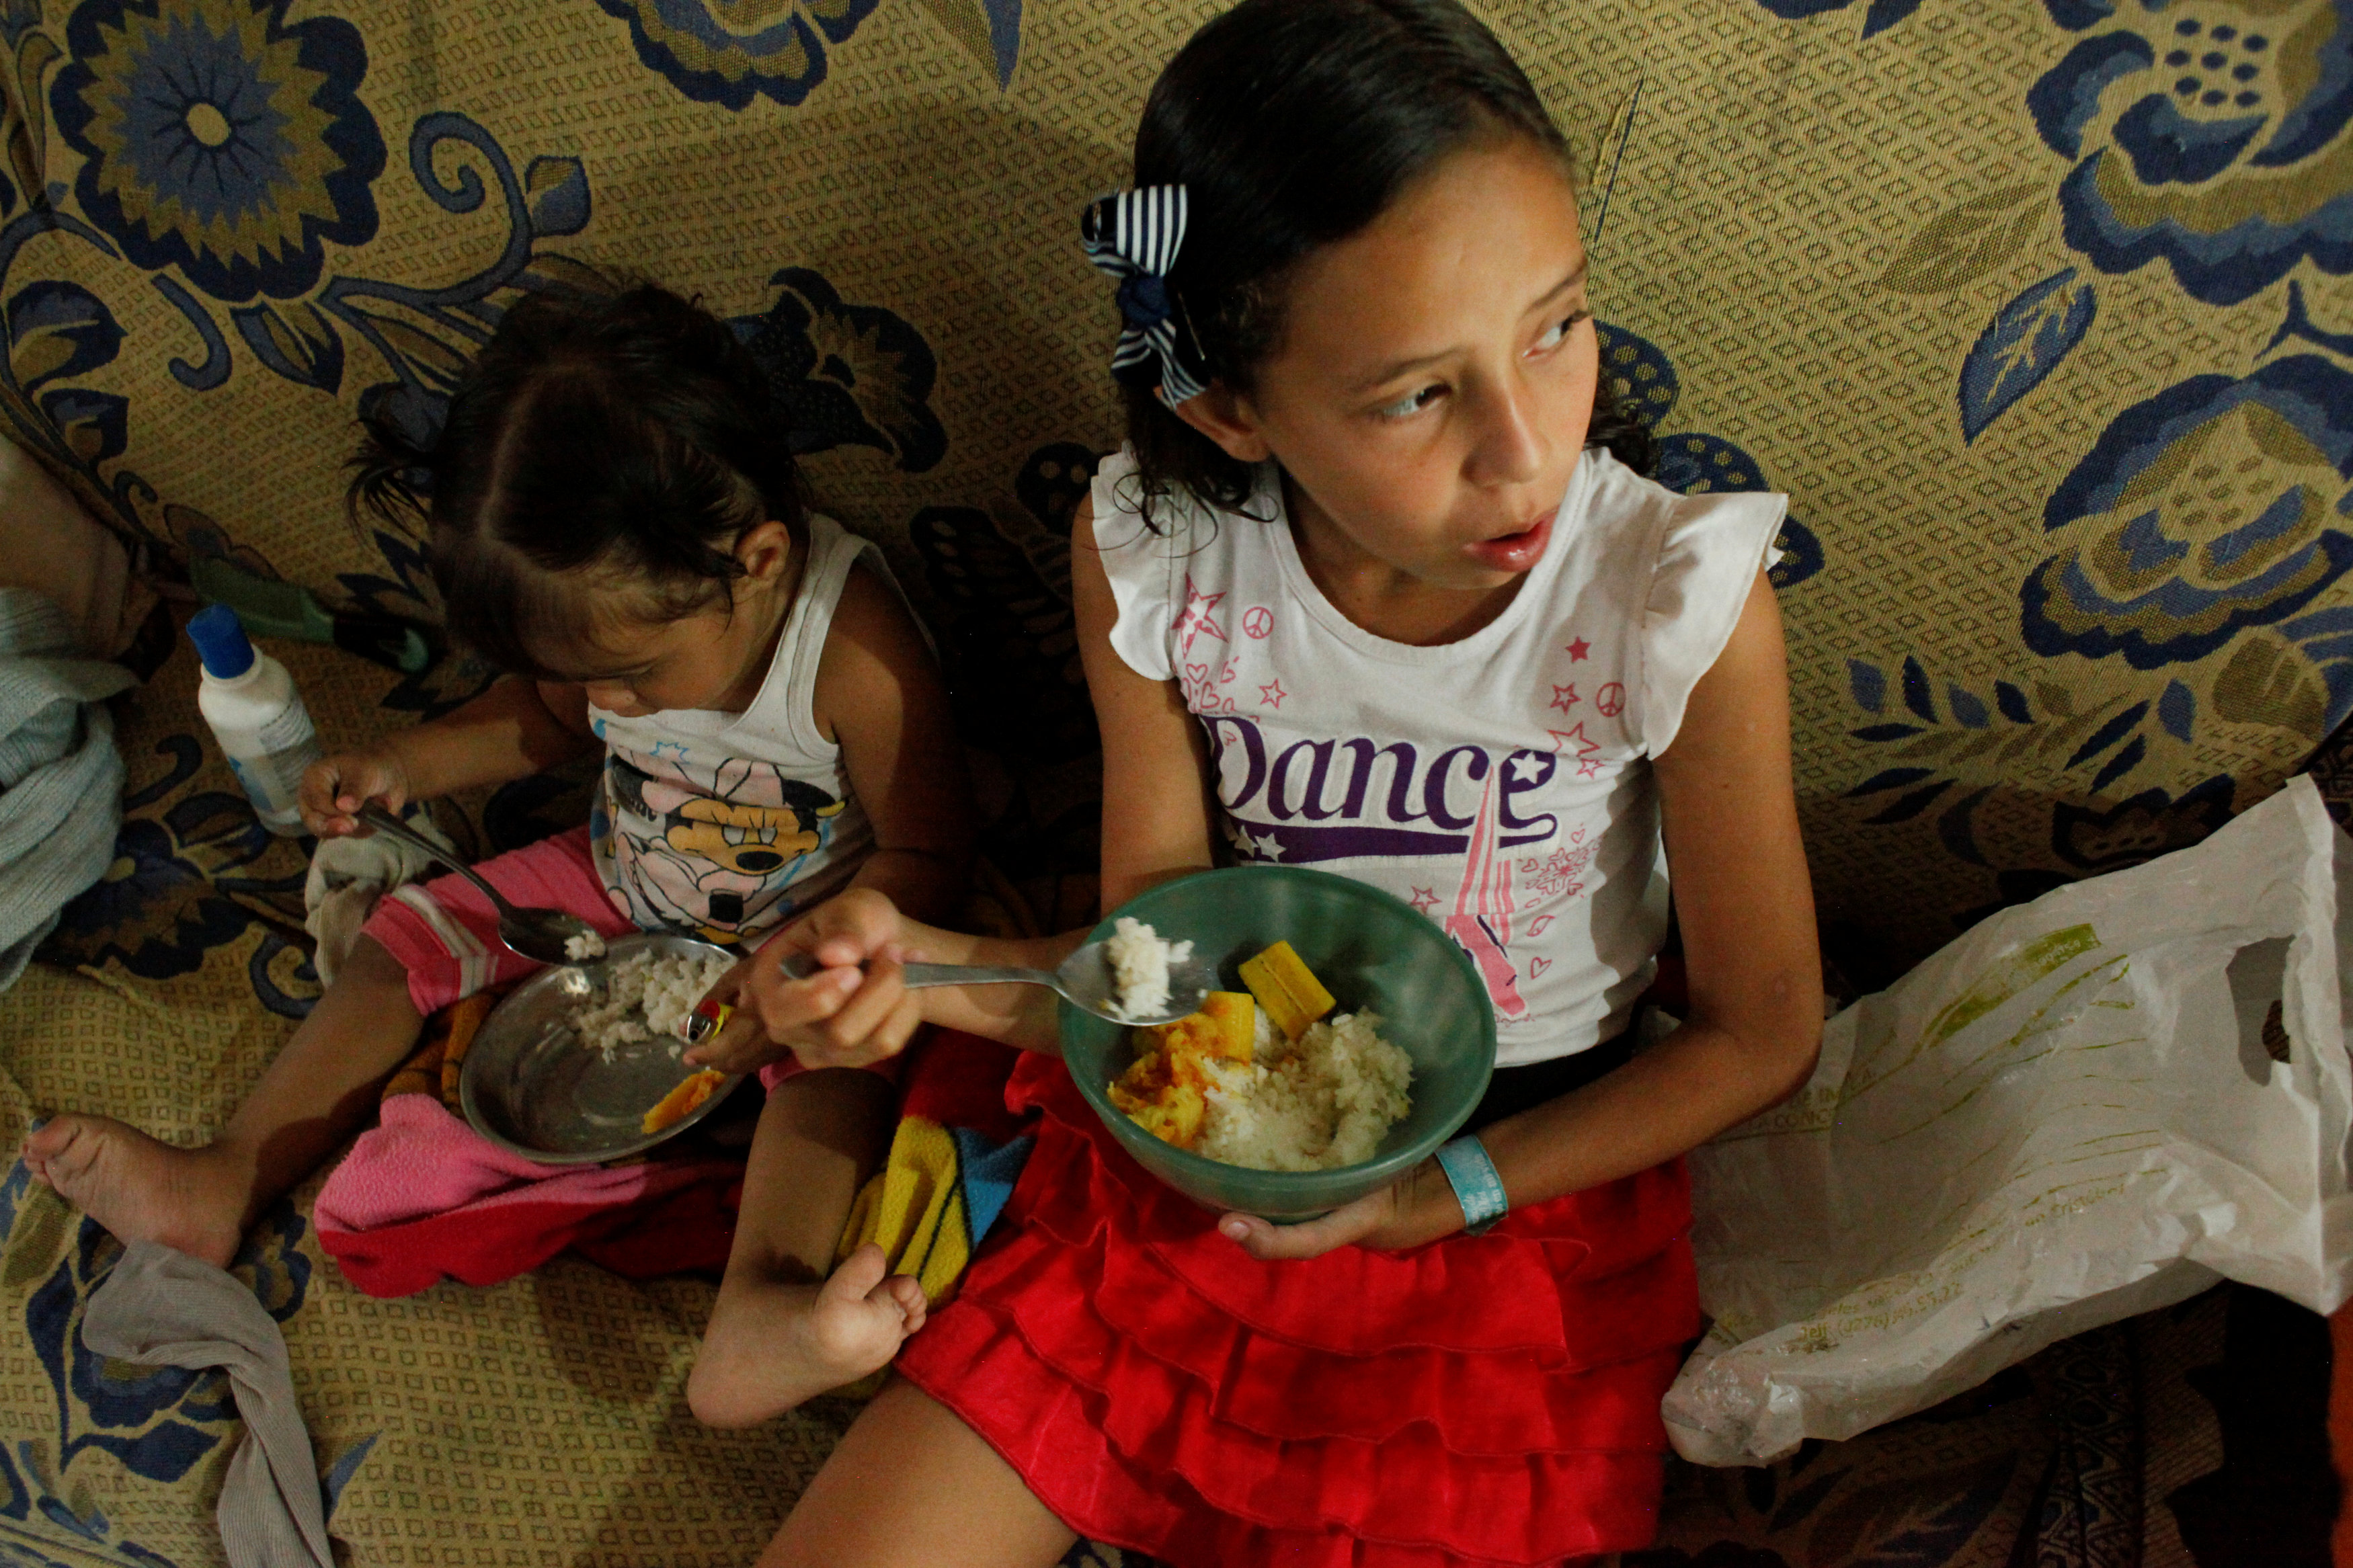 Juliani Caceres, grand daughter of Carmen Penaloza, have rice and platain for lunch at her home in San Cristobal, Venezuela April 5, 2018. Picture taken April 5, 2018. REUTERS/Carlos Eduardo Ramirez